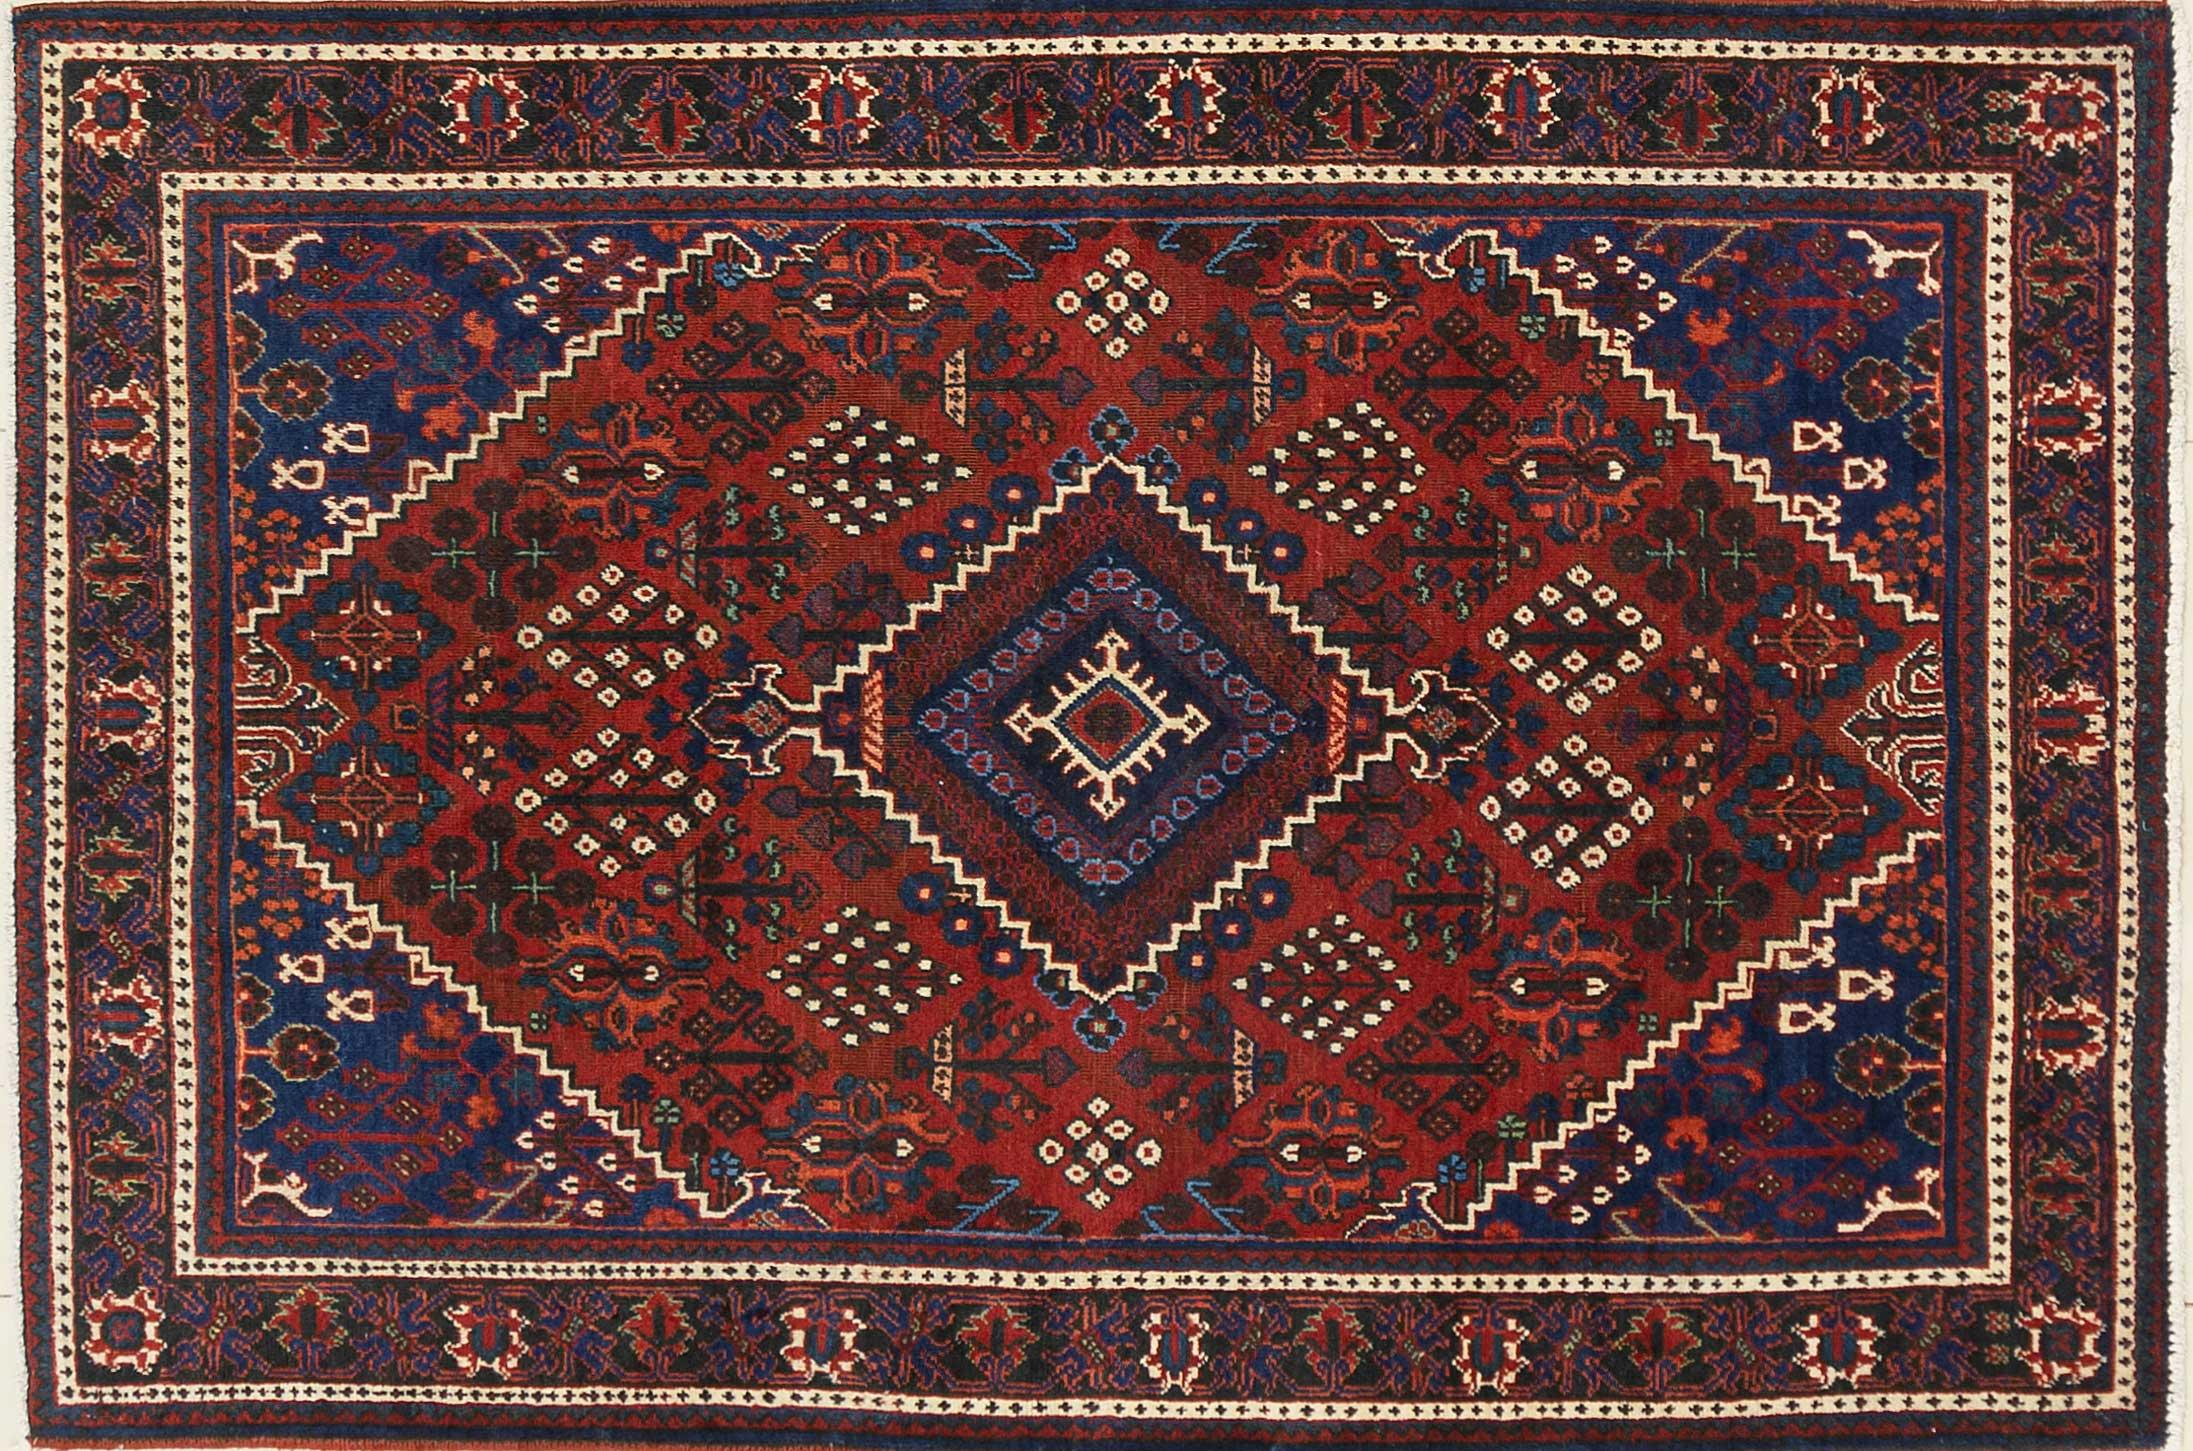 A Persian Hand Knotted Joshegan Rug, 200 x 137